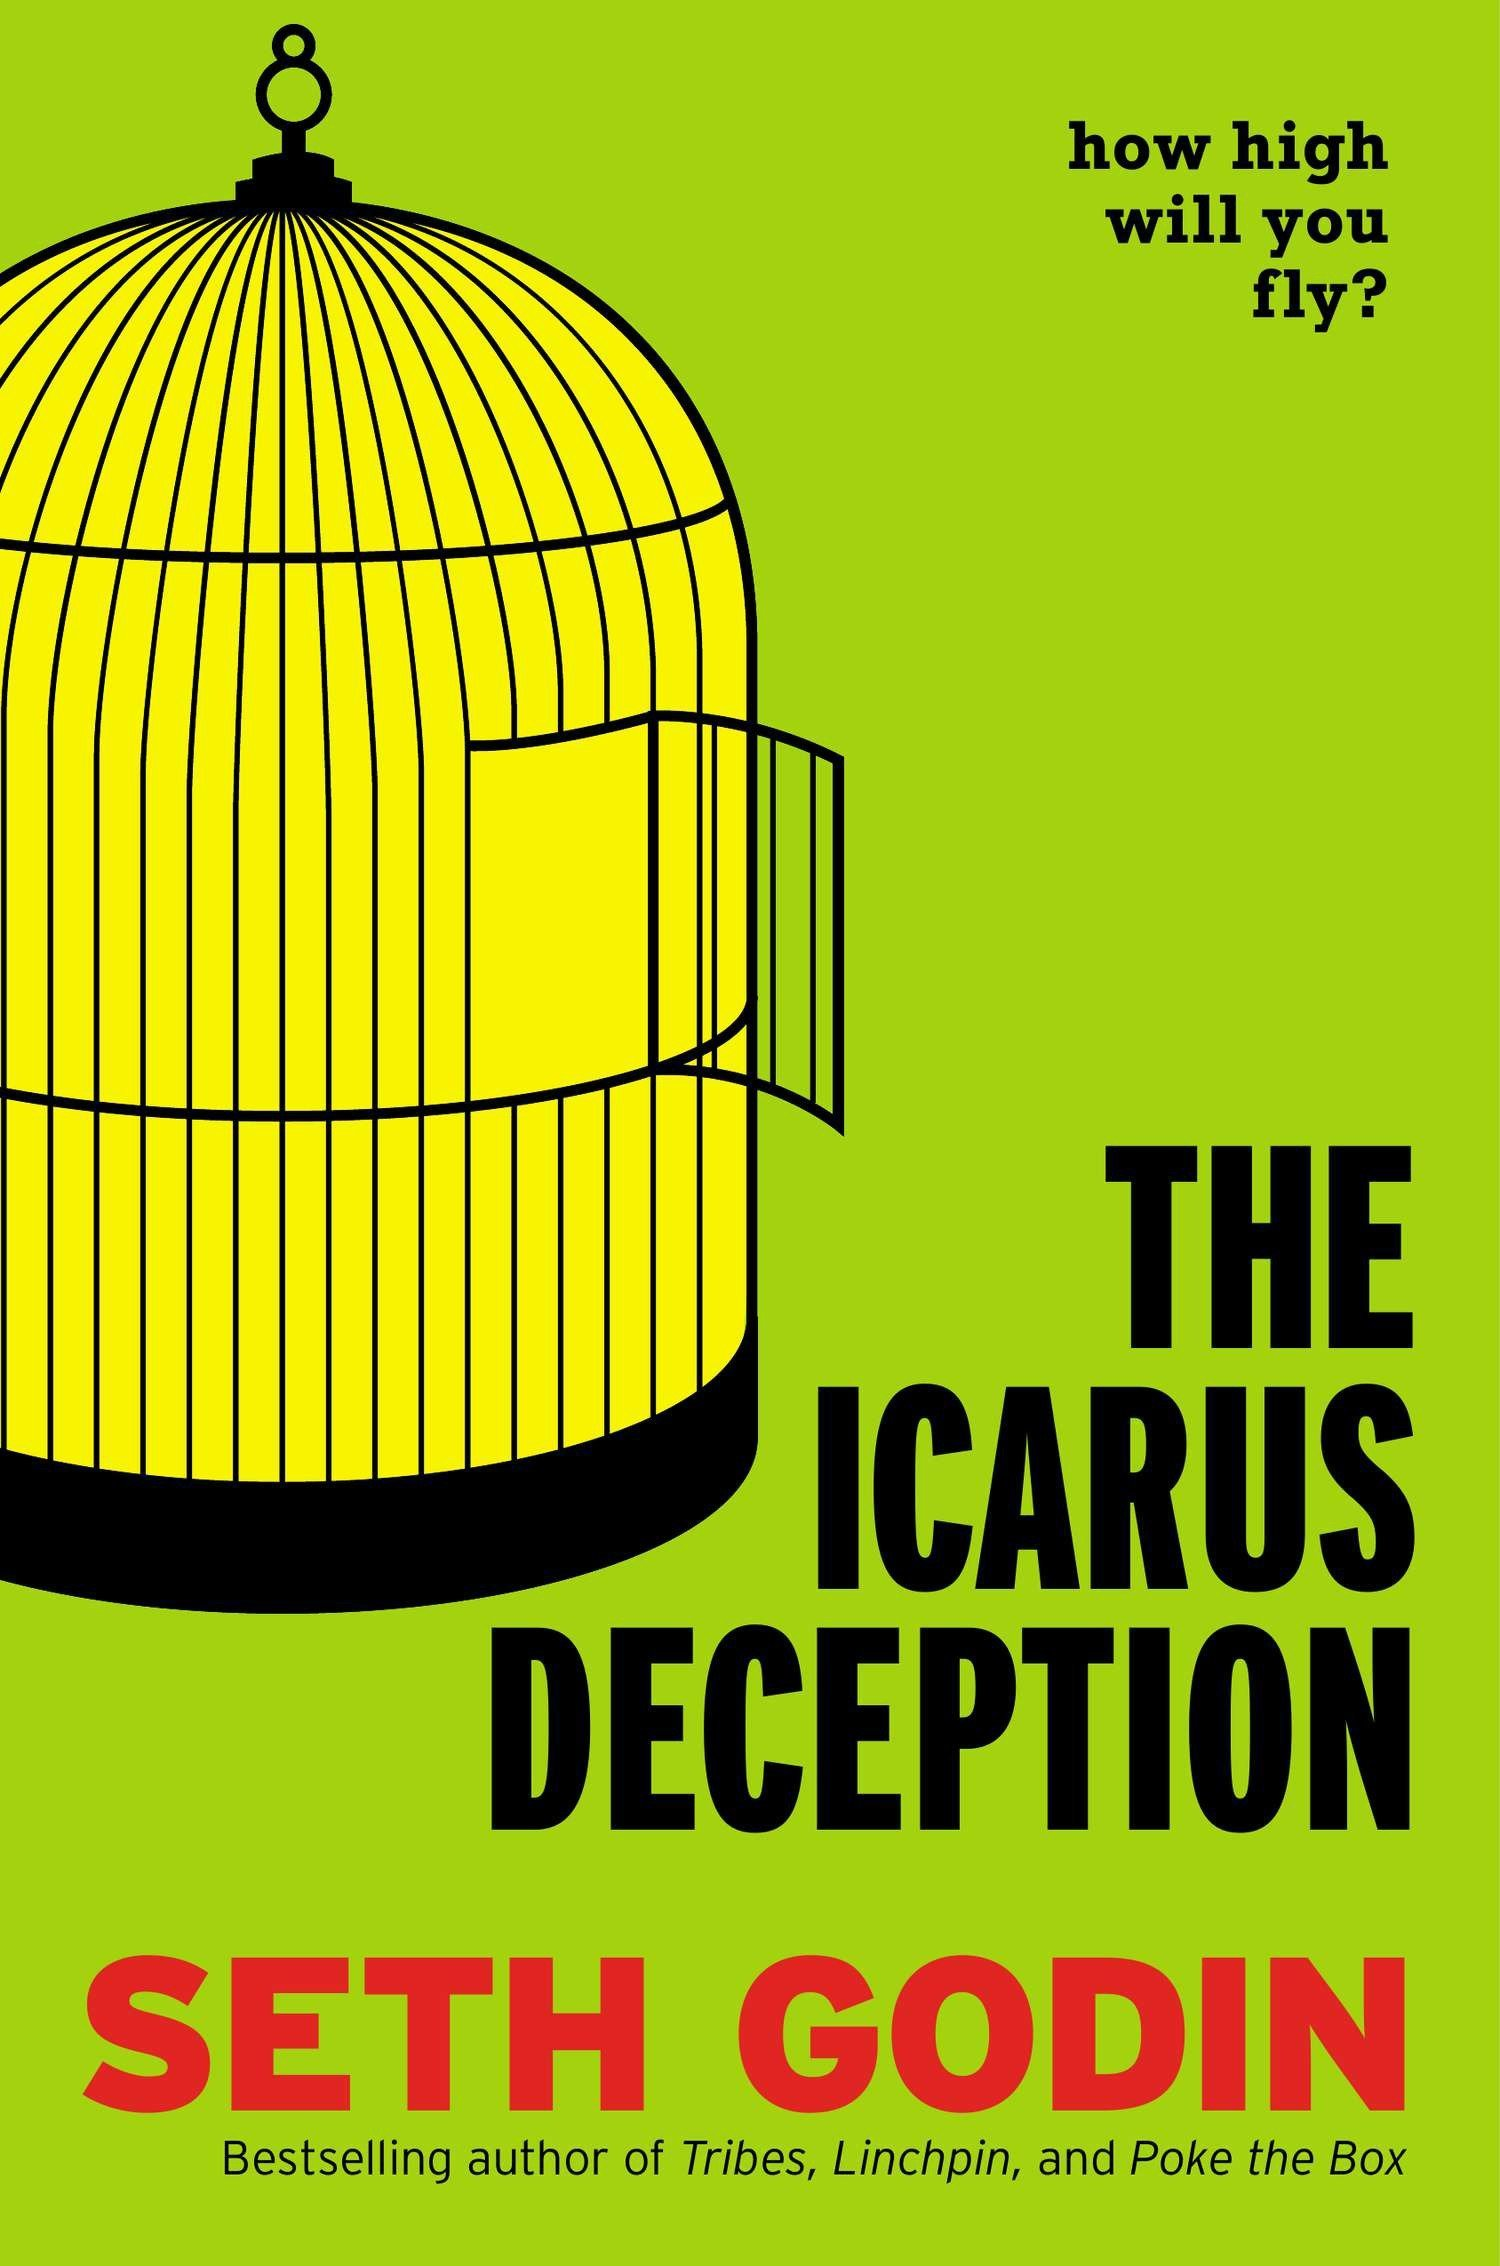 The Icarus Deception - By Seth Godin